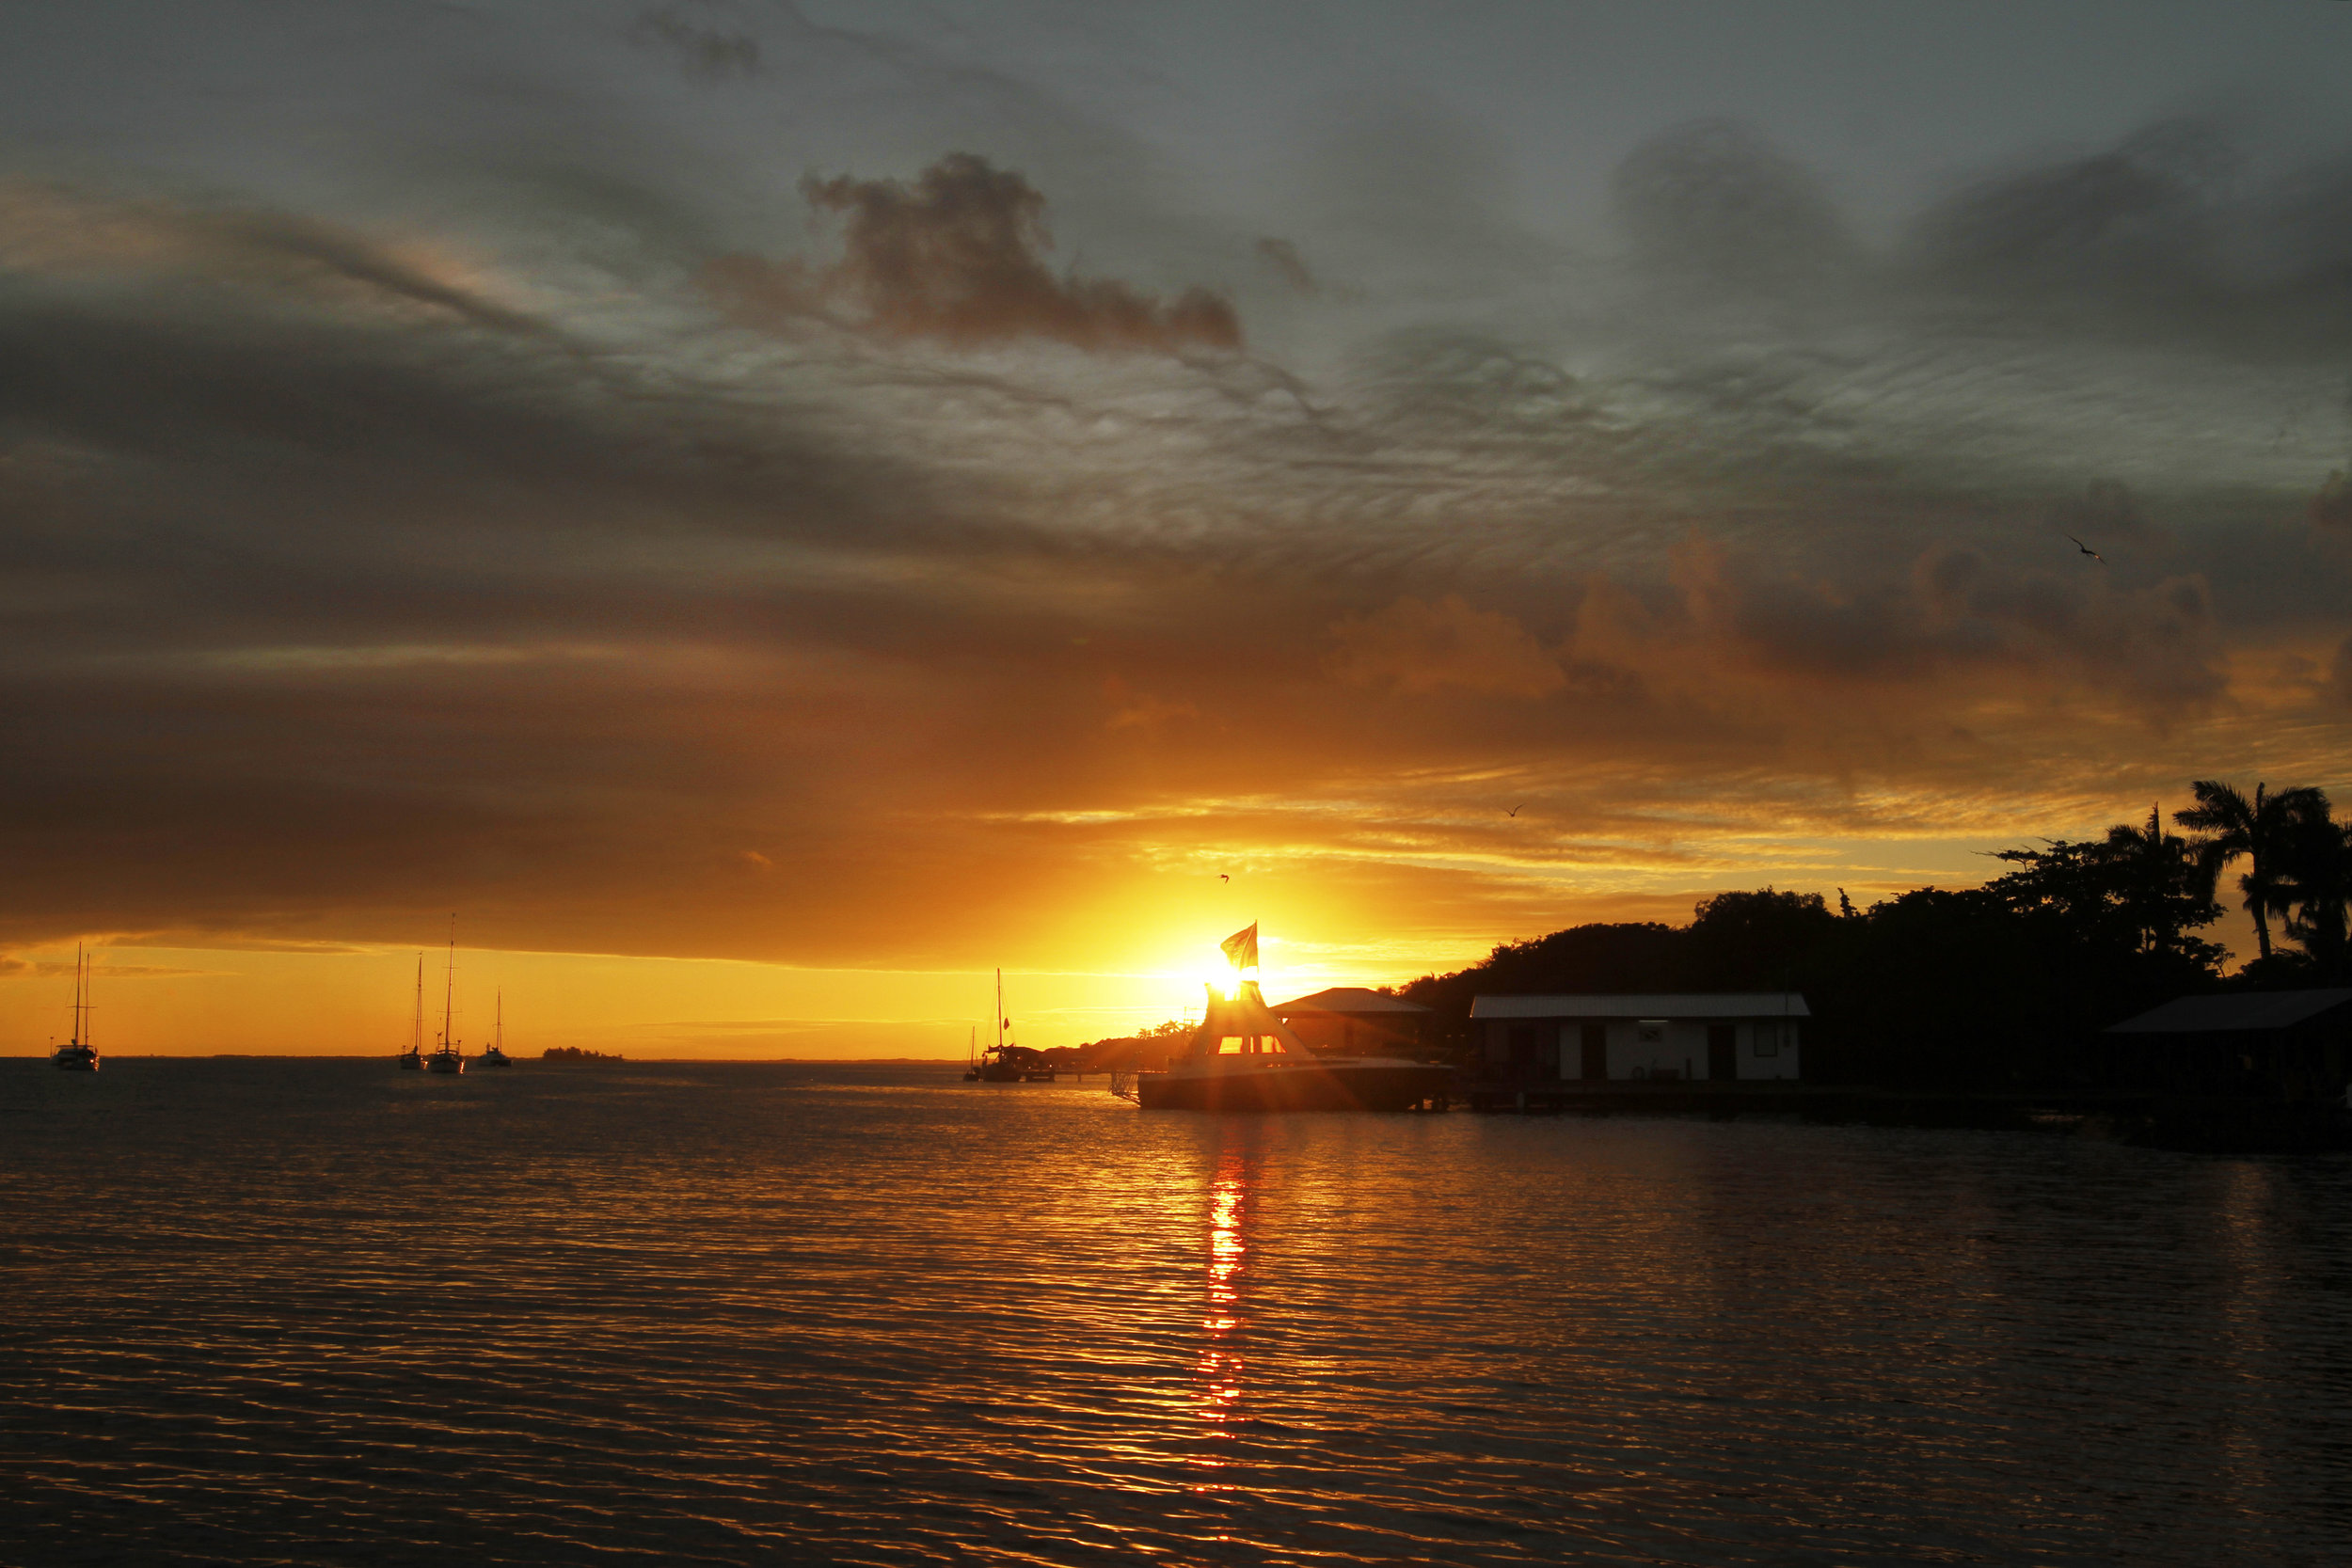 A striking sunset fills the sky over the Placencia Peninsula.